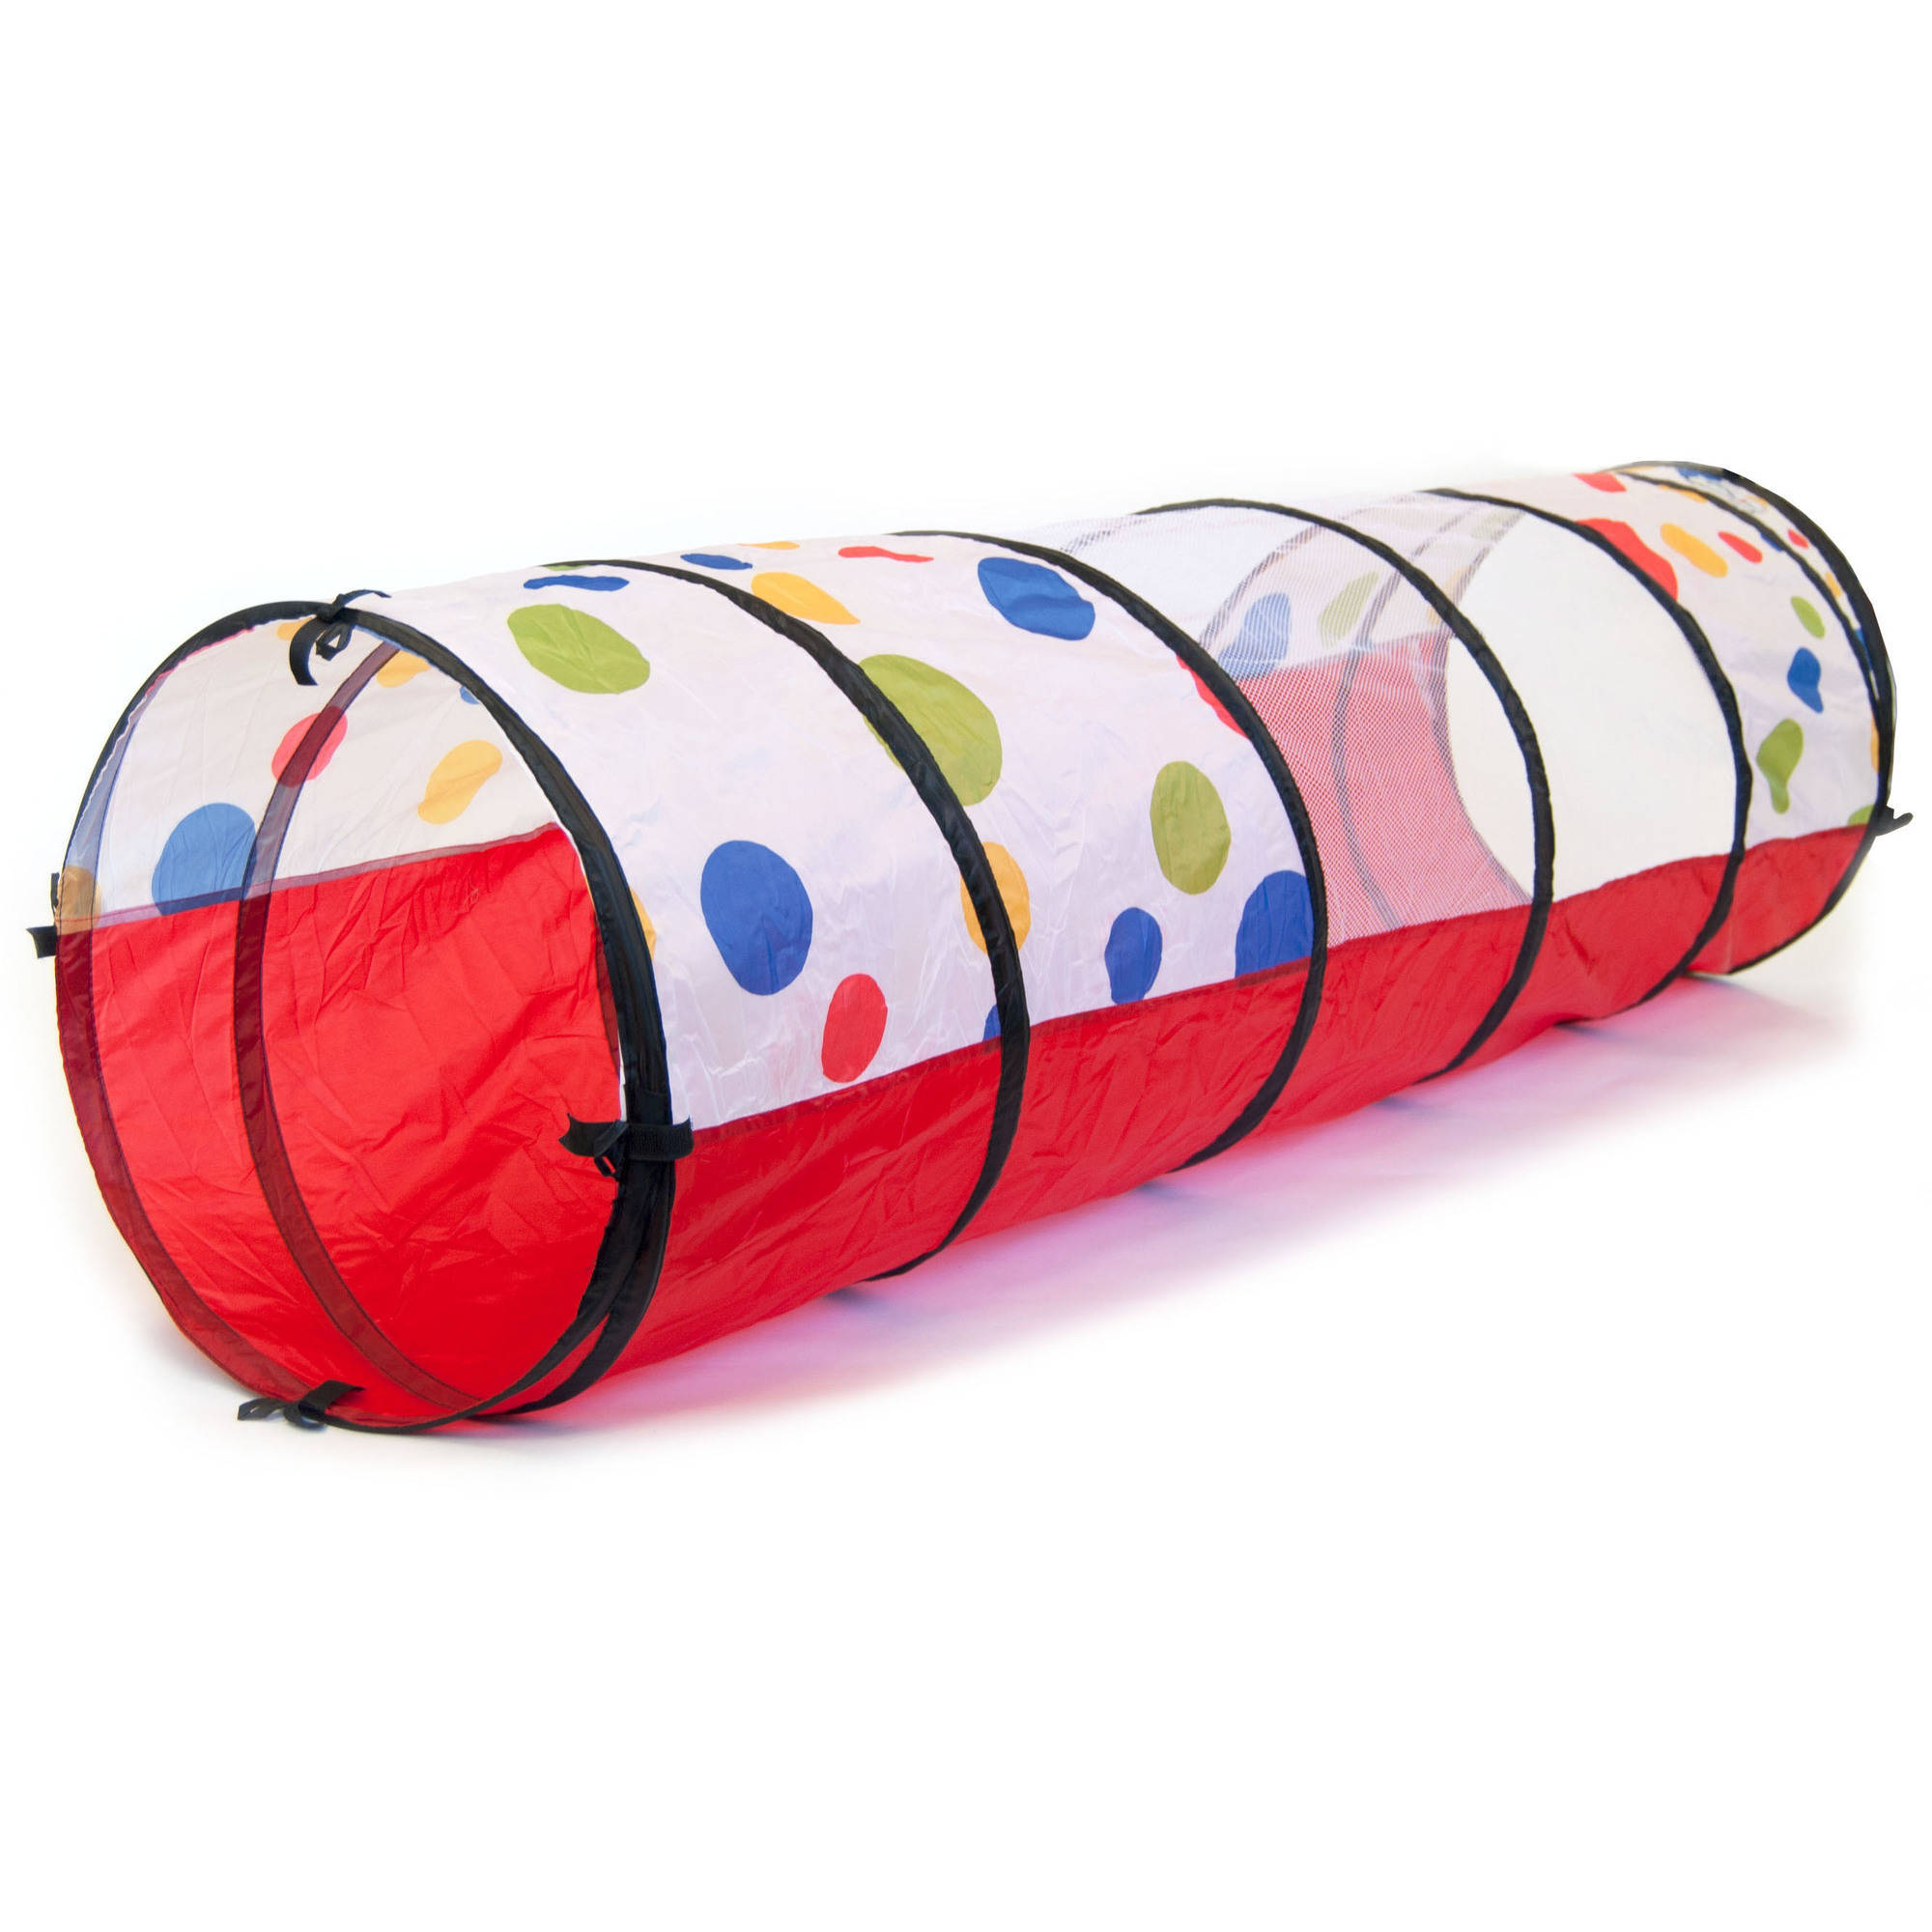 "eWonderWorld Jumbo Polka Dot Development Crawl Play Tunnel with Safety Meshing and Tote Bag, 20"" x 69"""